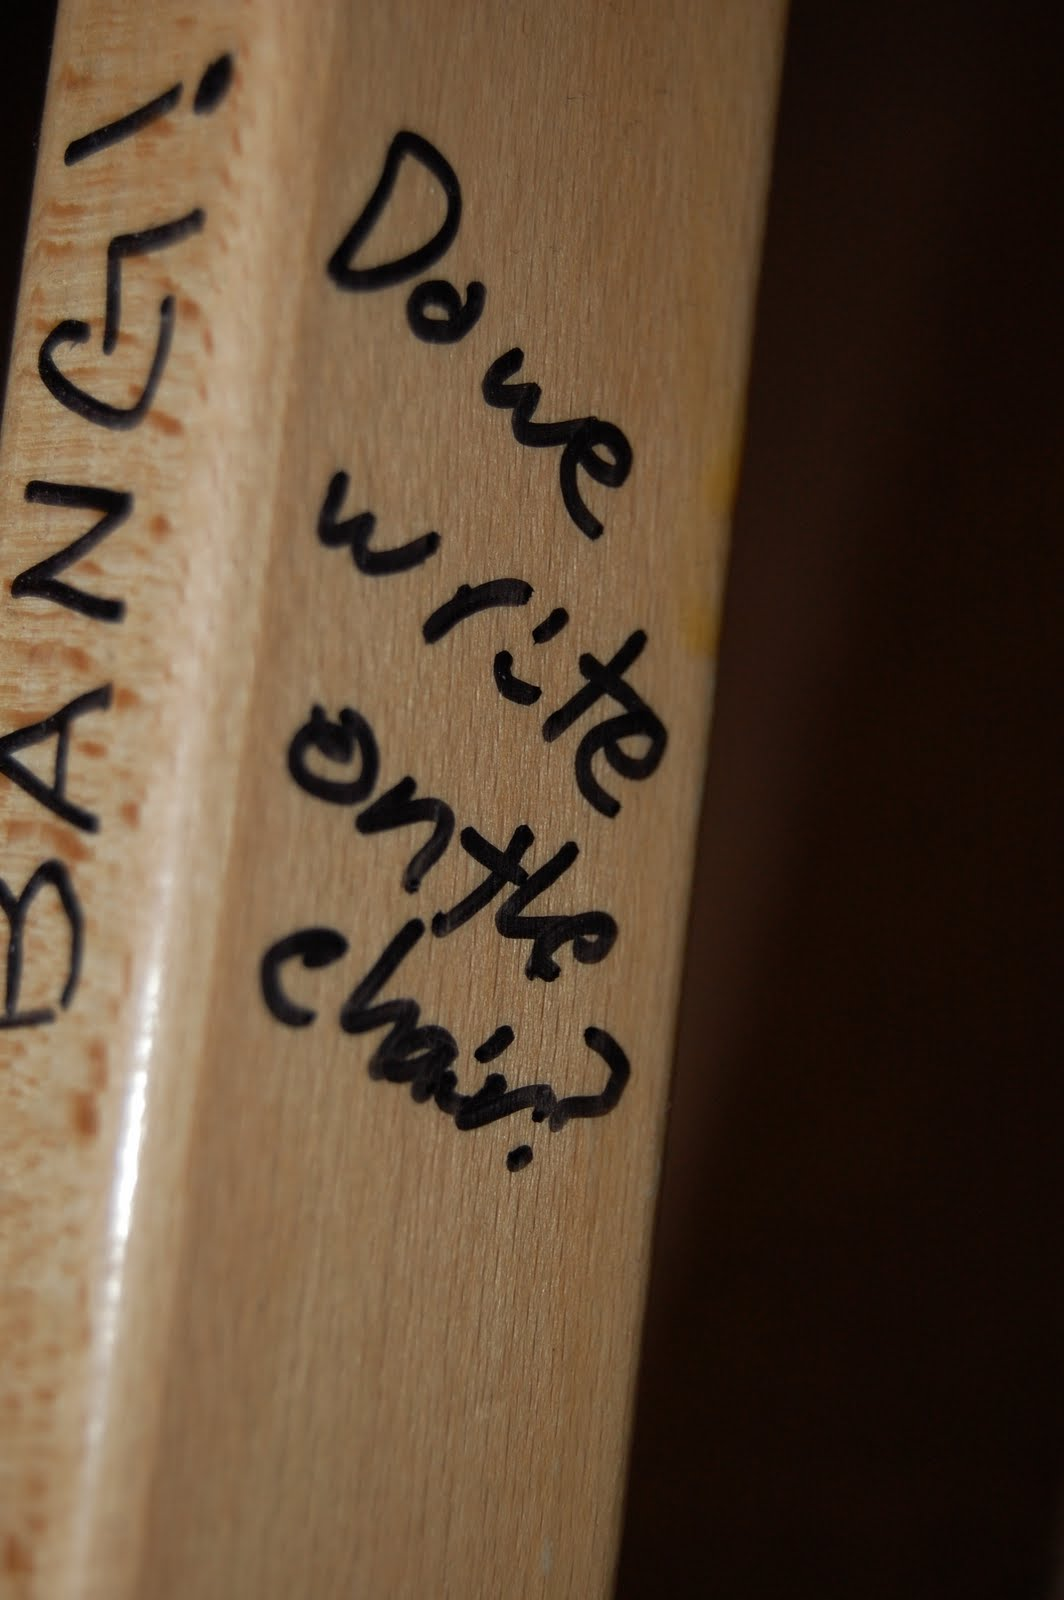 Do We Write On The Chair!